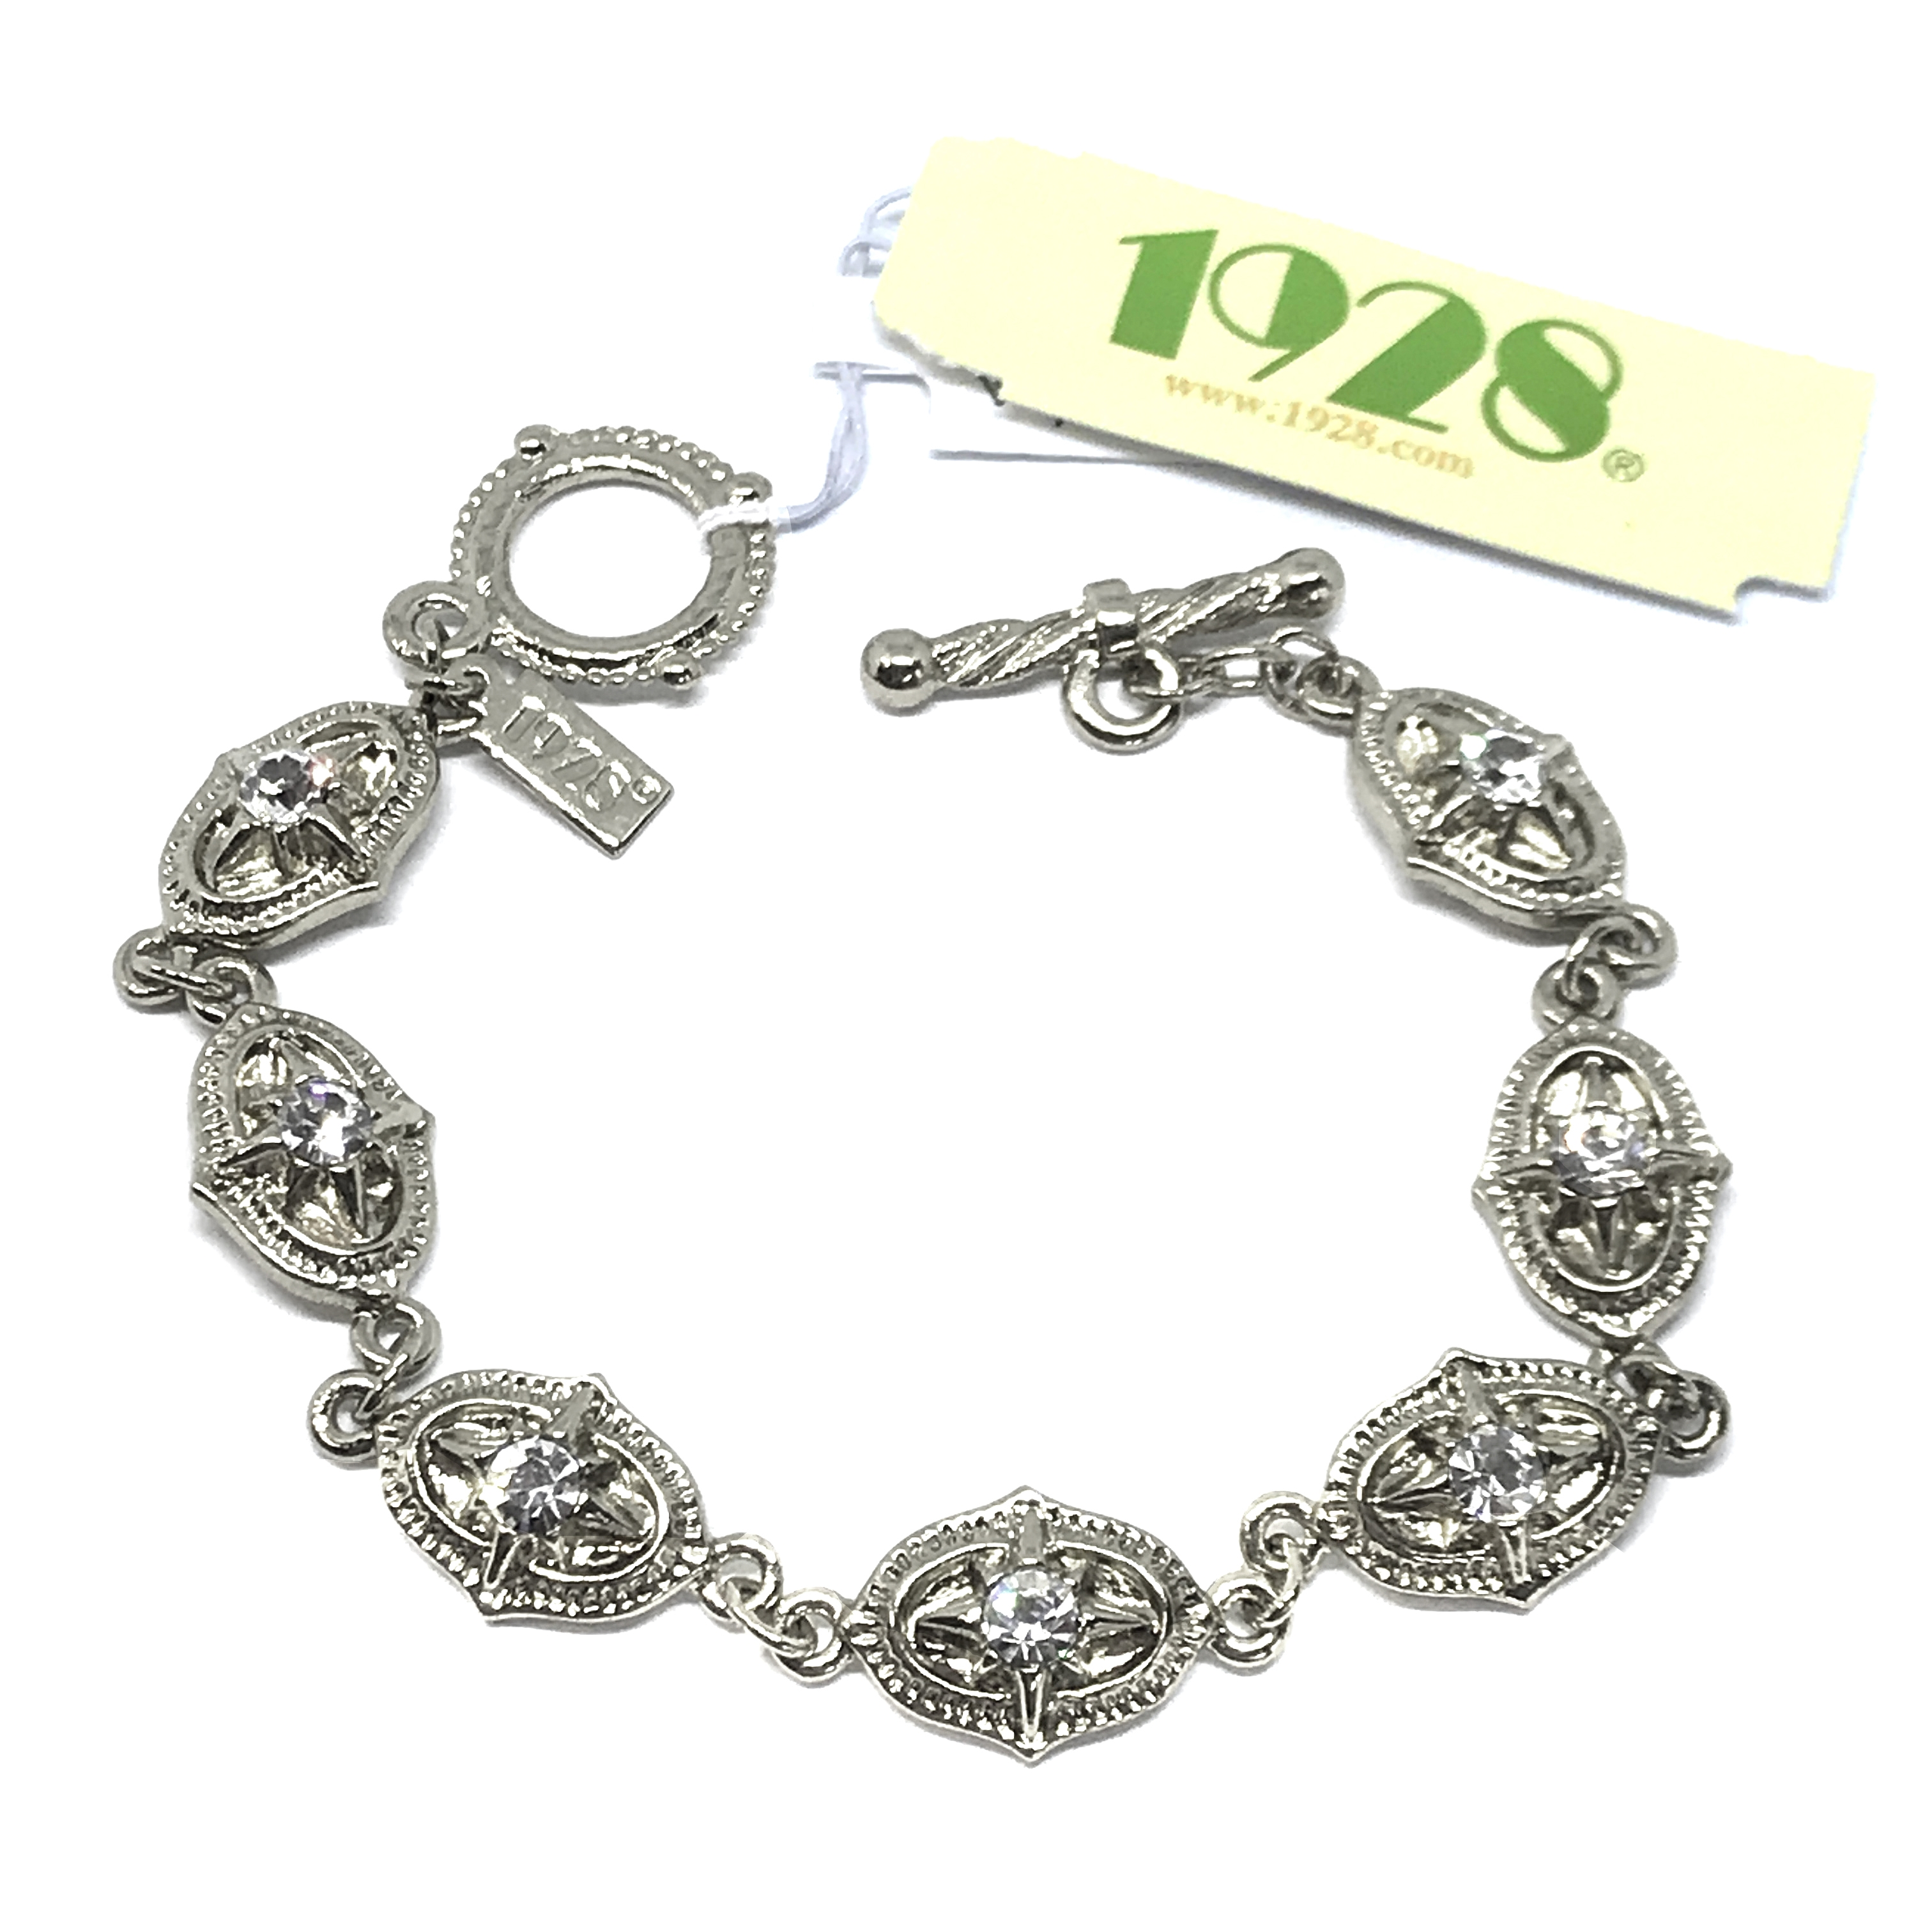 1928 Jewelry Company, clear crystal bracelet, bracelet, silver-tone, clear crystals, US-made, 1928 pieces, B'sue Boutiques, 7 1/4 inches, toggle closure, 1928-01488, silver bracelet, 1928 bracelet